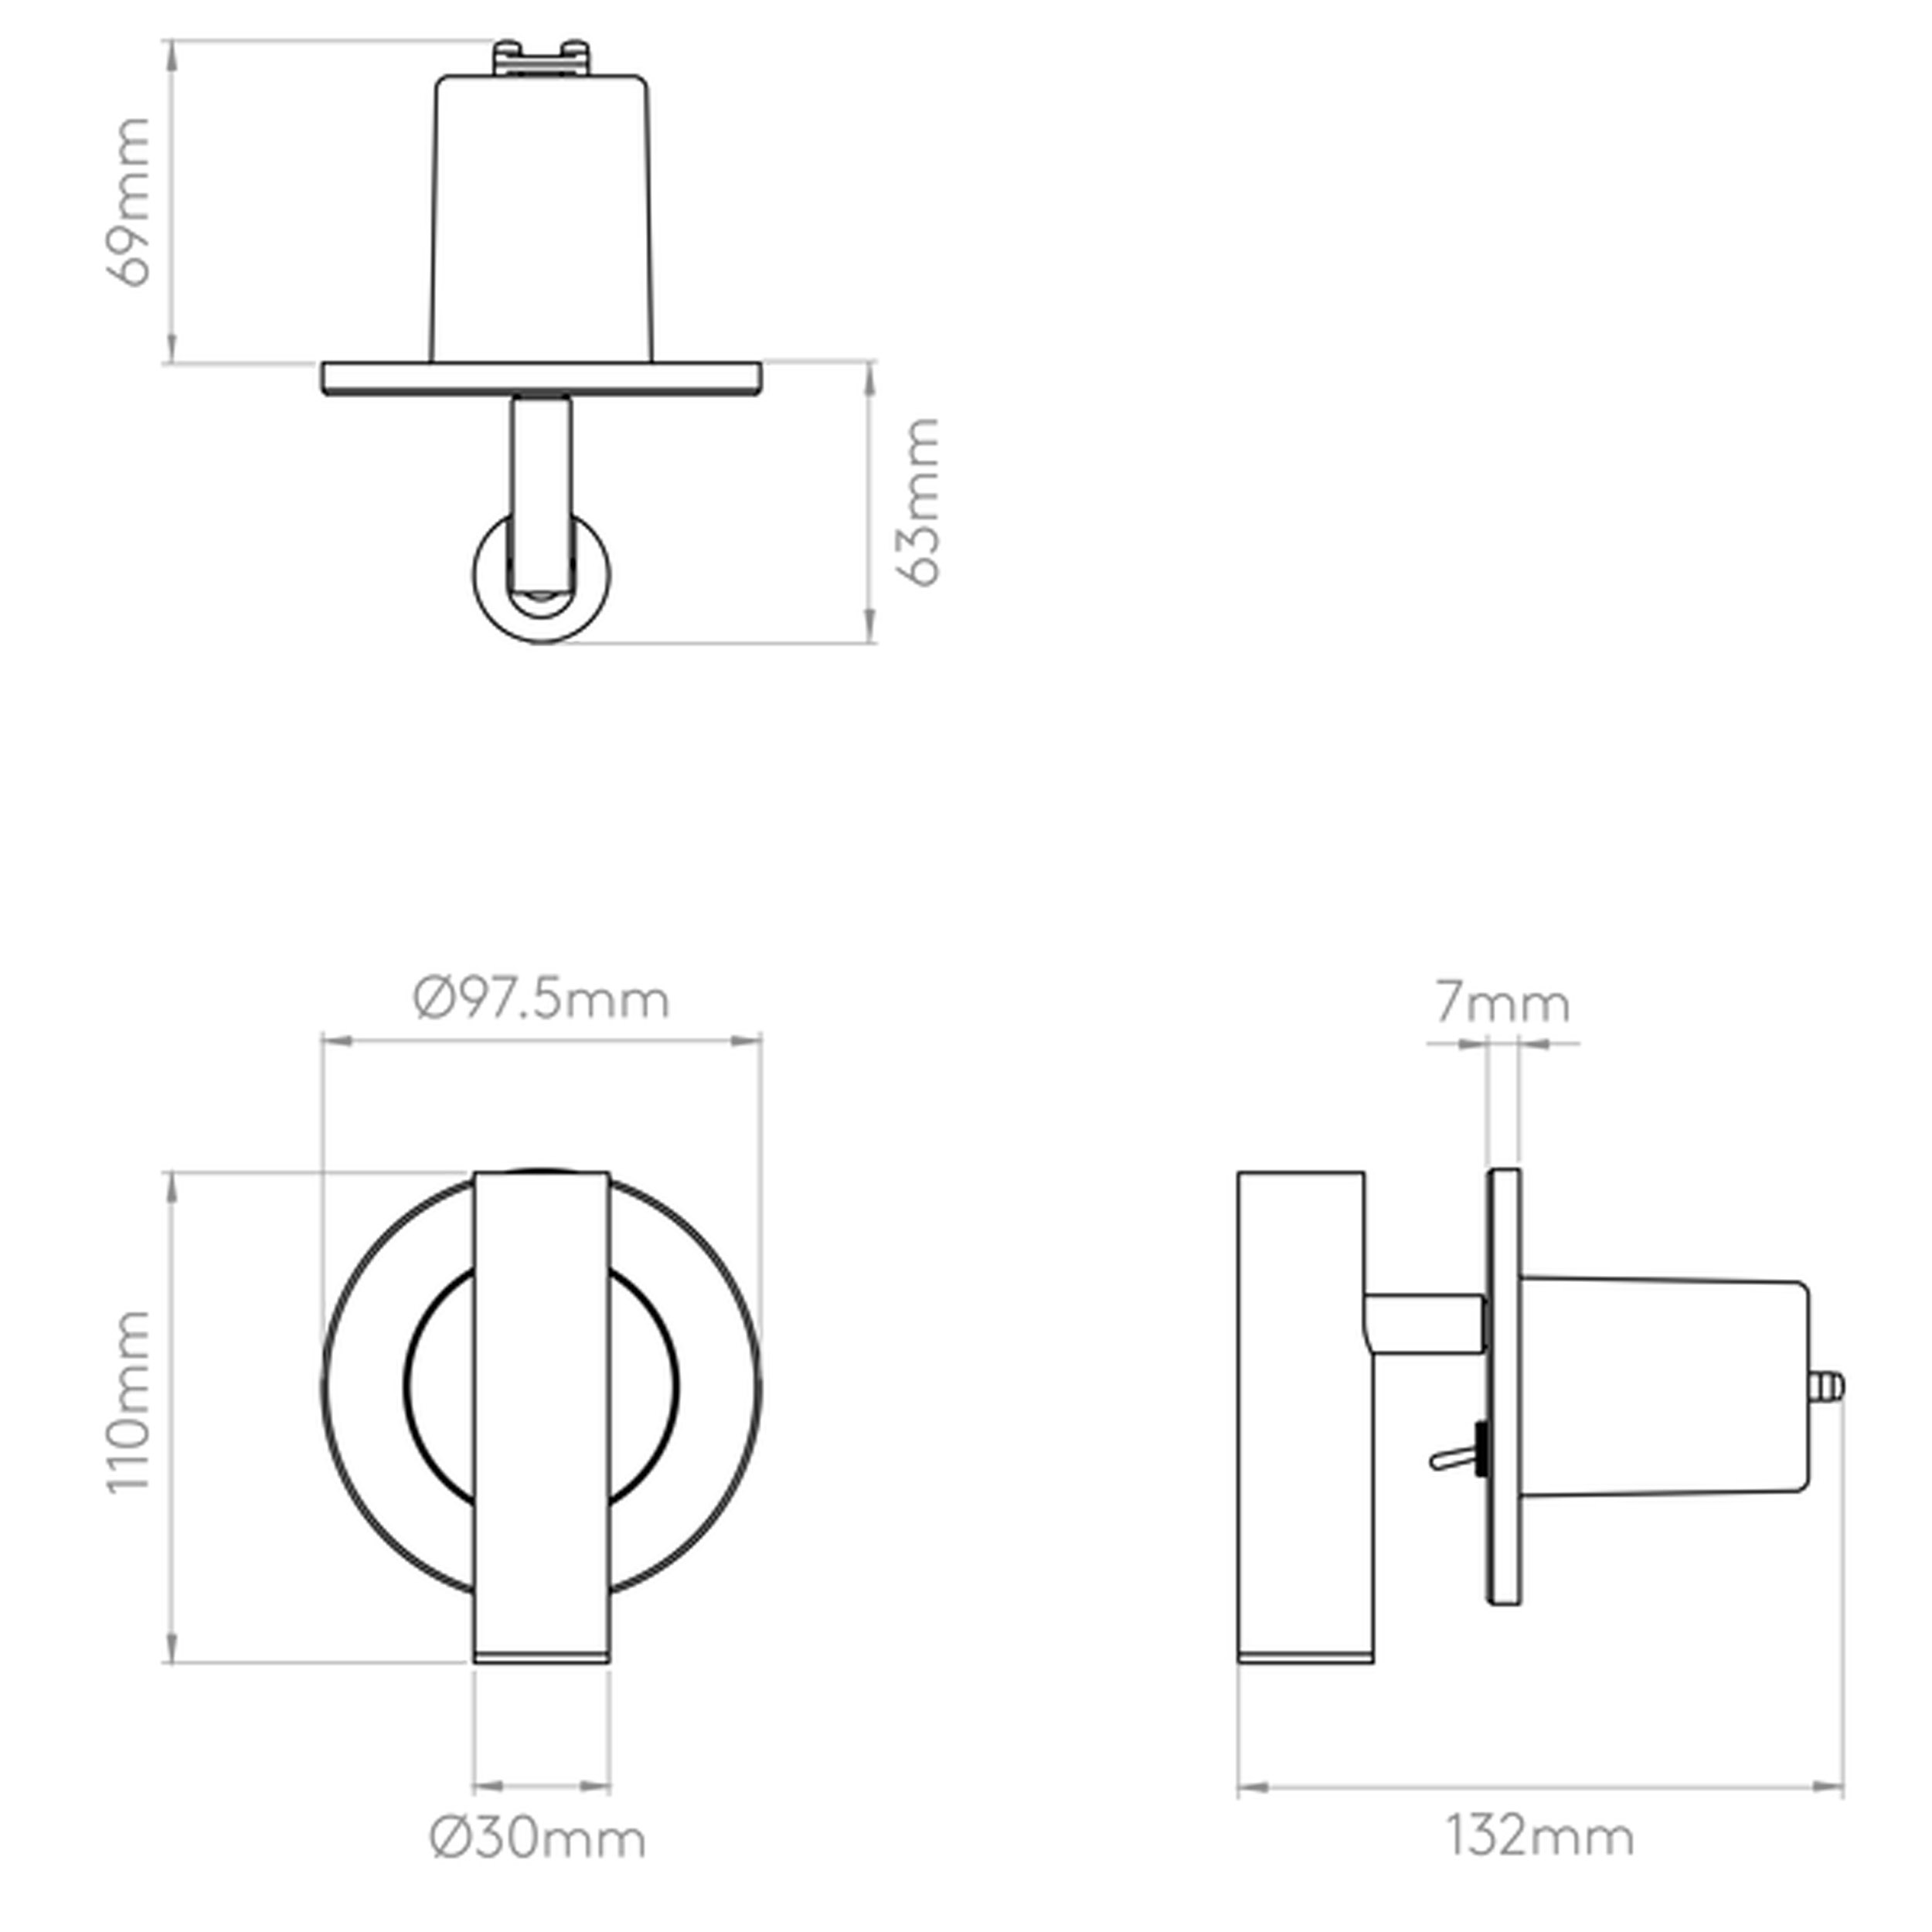 Astro Enna Recess Switched Led Wall Light Line Drawing